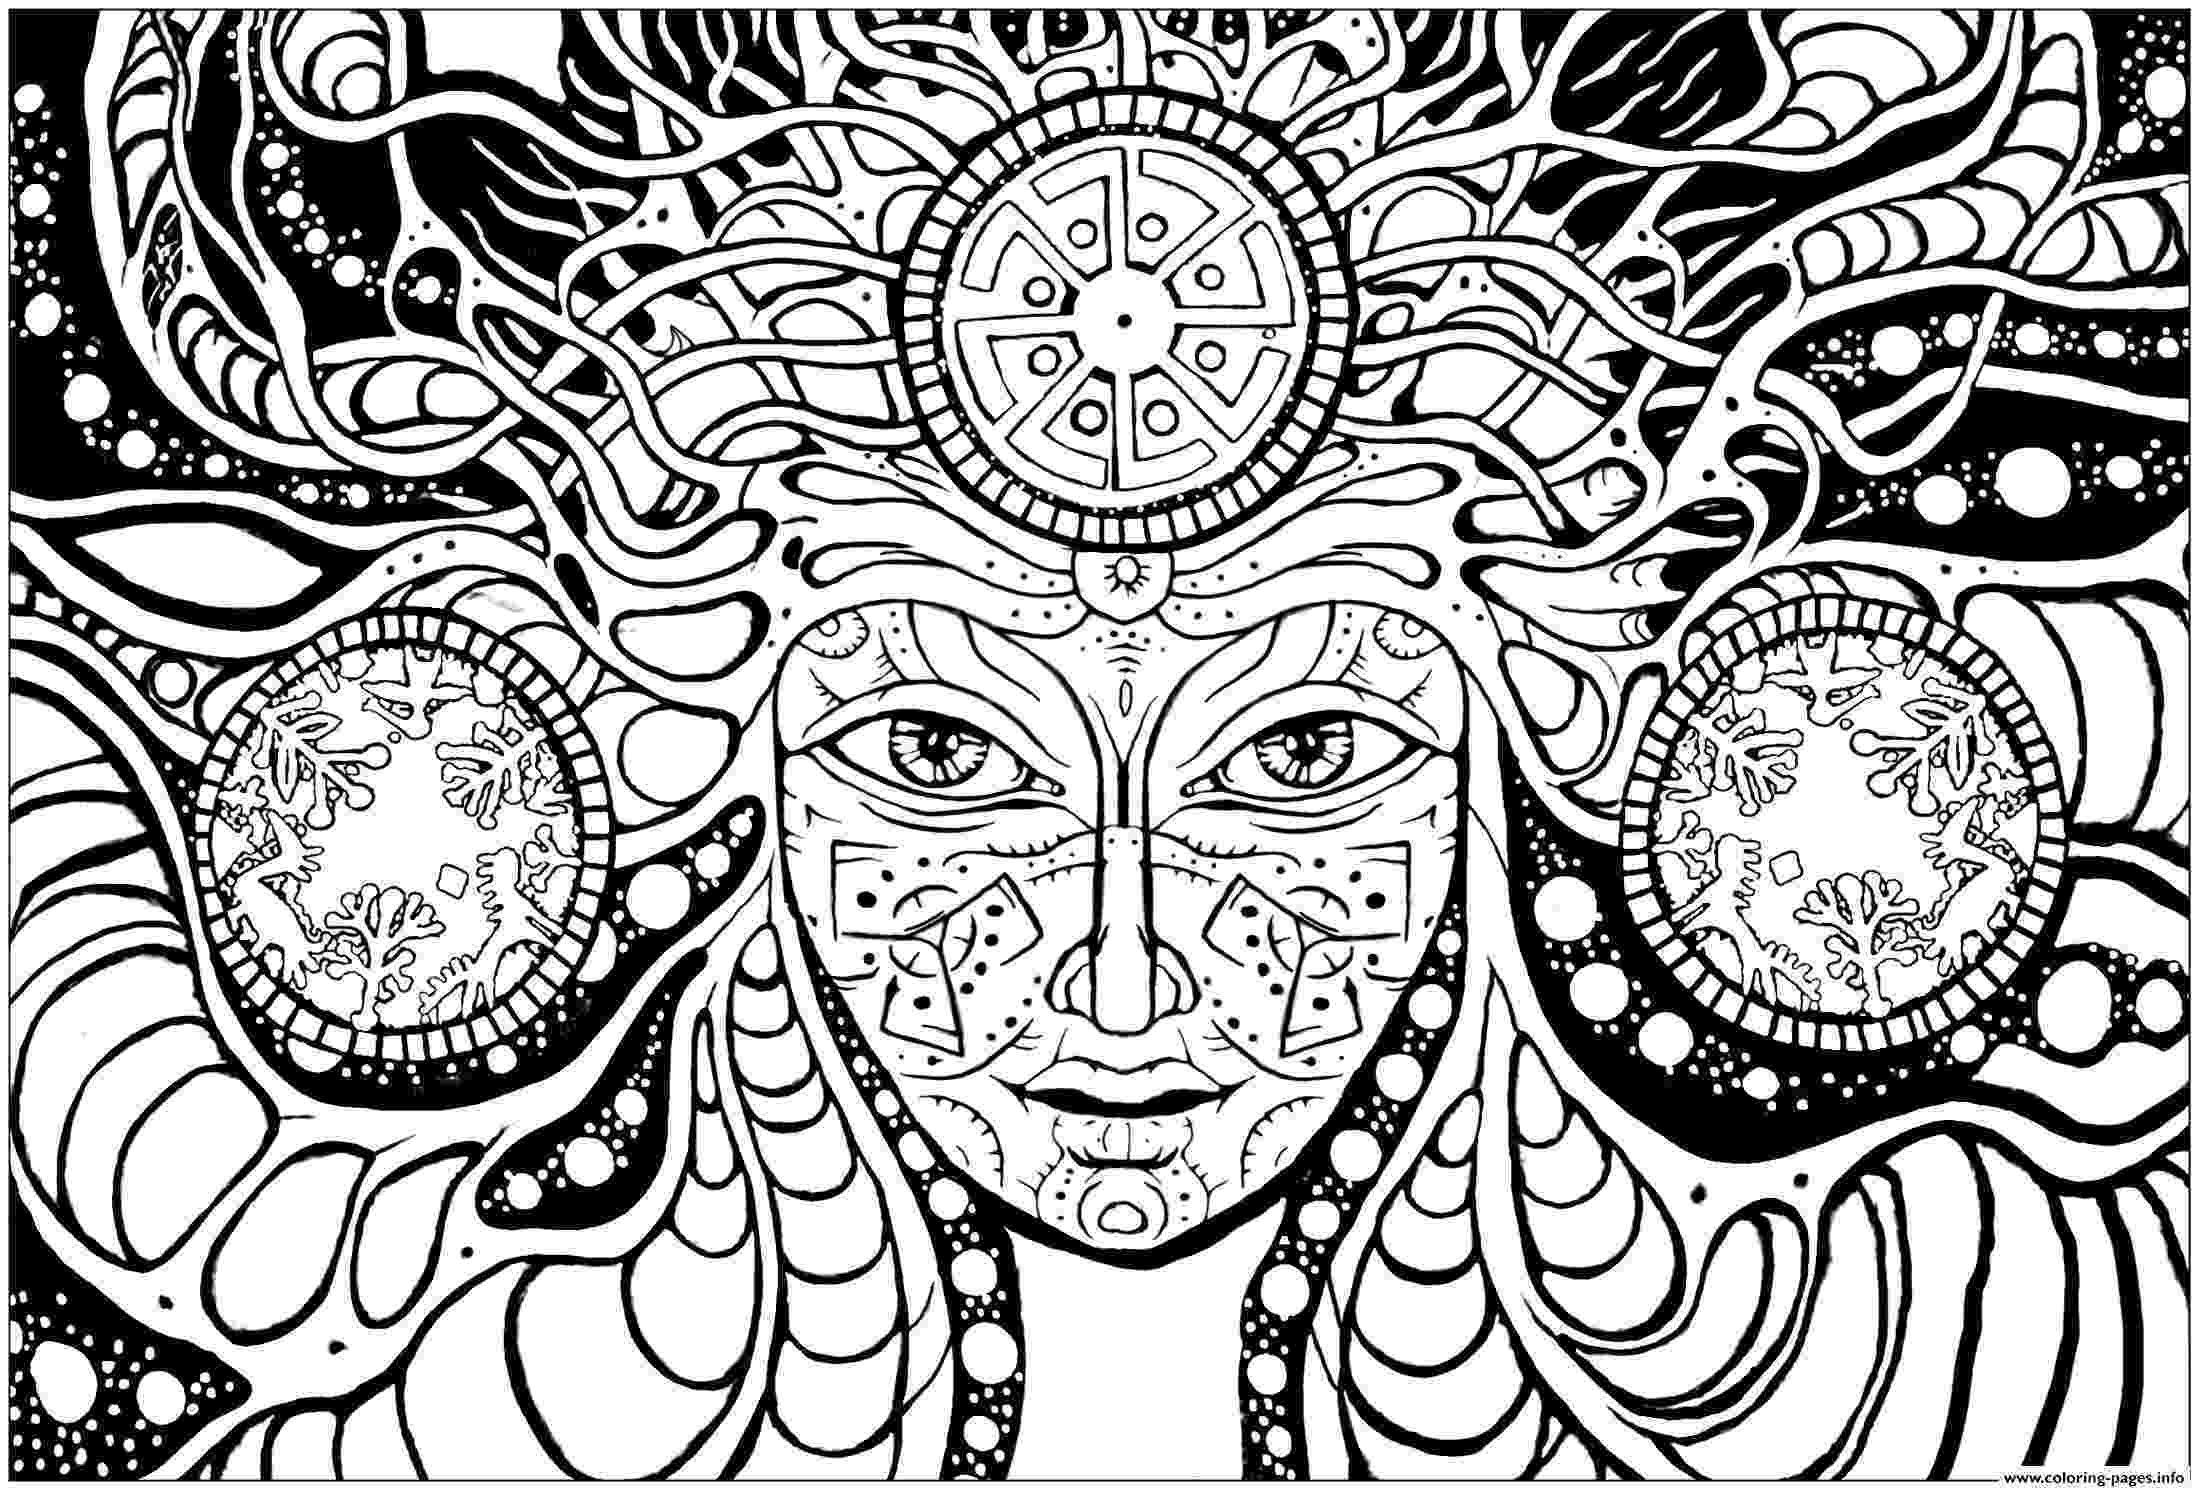 trippy coloring pages printable trippy space alien flying saucer and planets coloring trippy printable coloring pages